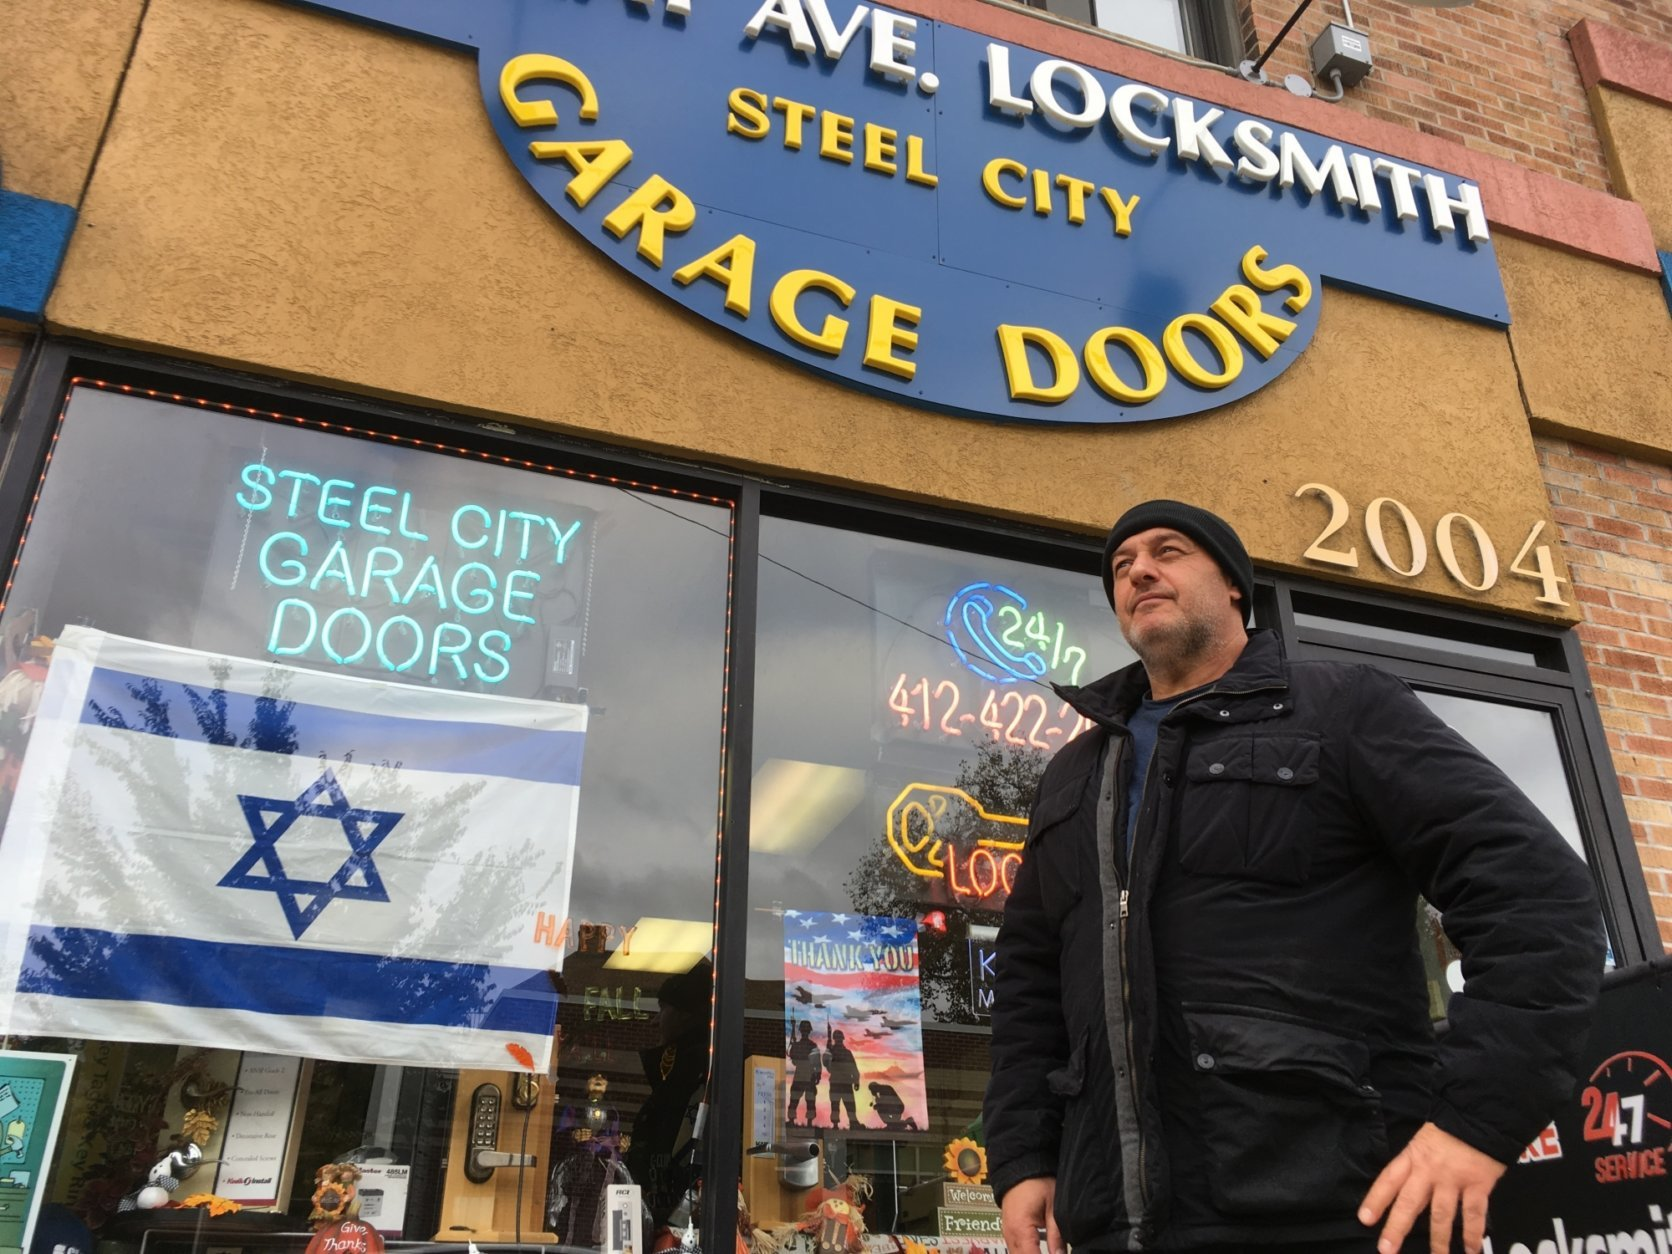 David Dvir stands in front of his business, Murray Avenue Locksmith, in the Squirrel Hill neighborhood of Pittsburgh, Monday, Oct. 29, 2018. Dvir, who was born in Israel but is an American citizen, voted for Donald Trump and doesn't agree with Jewish leaders who say the president shouldn't come to help mourn the victims of last week's synagogue massacre. (AP Photo/Allen G. Breed)